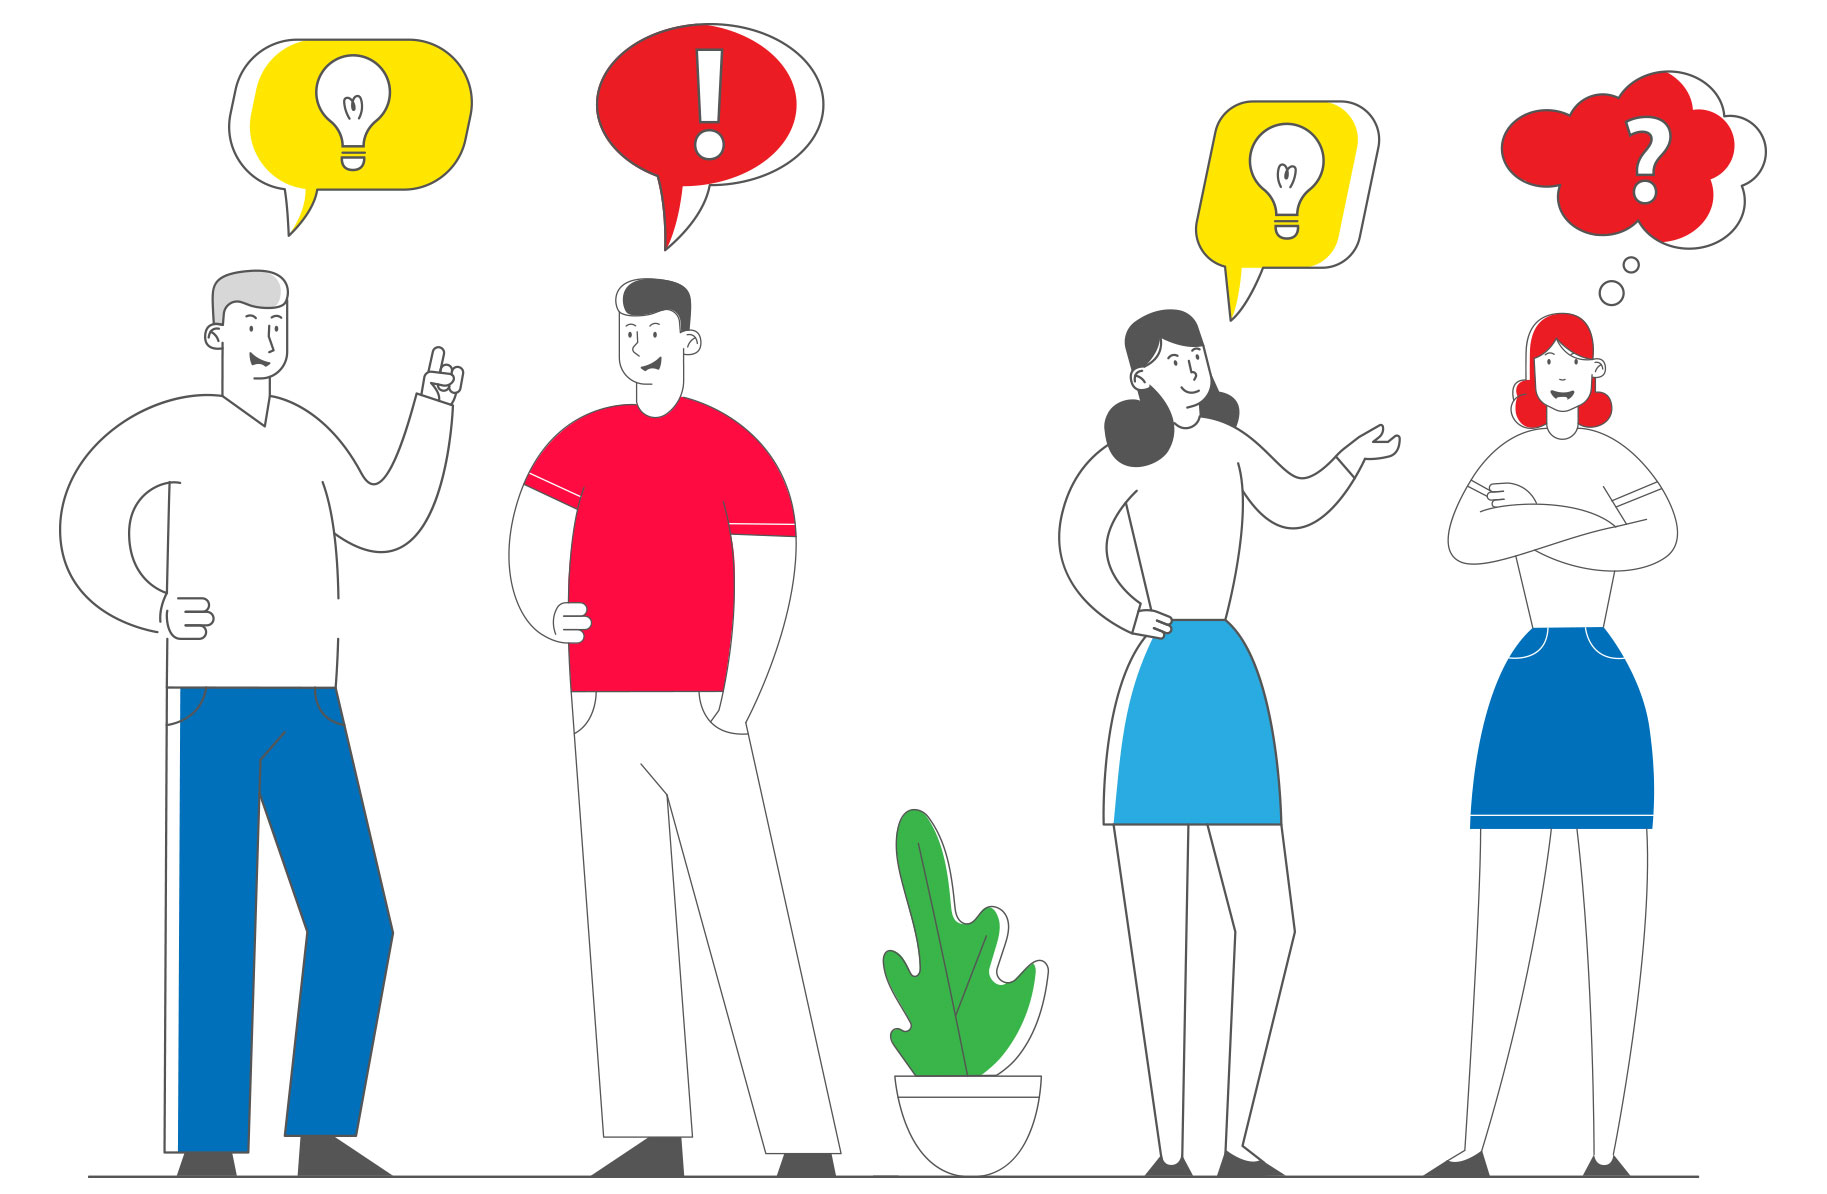 Illustration of a group of people not sharing ideas well